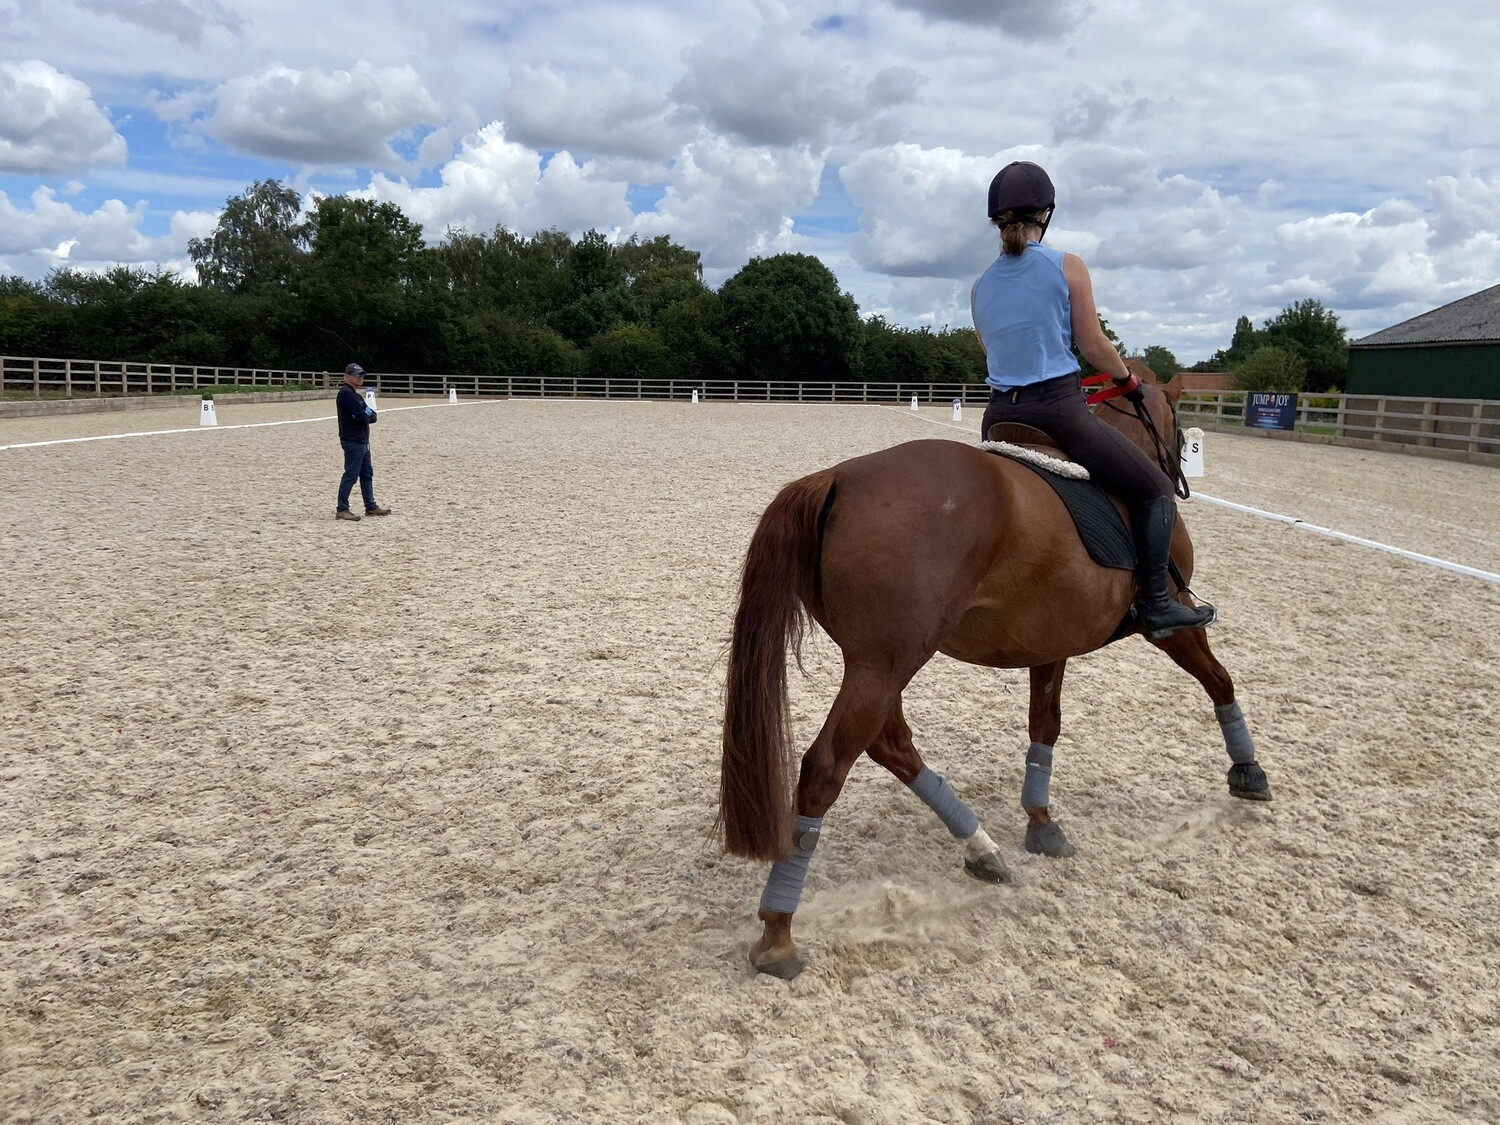 Testt: Follow Up Review : 30 Minutes (Must Have Had A Previous Assessment With Andy) : Hosted By Katie Scott, Greasby Equestrian, October 12th 2020